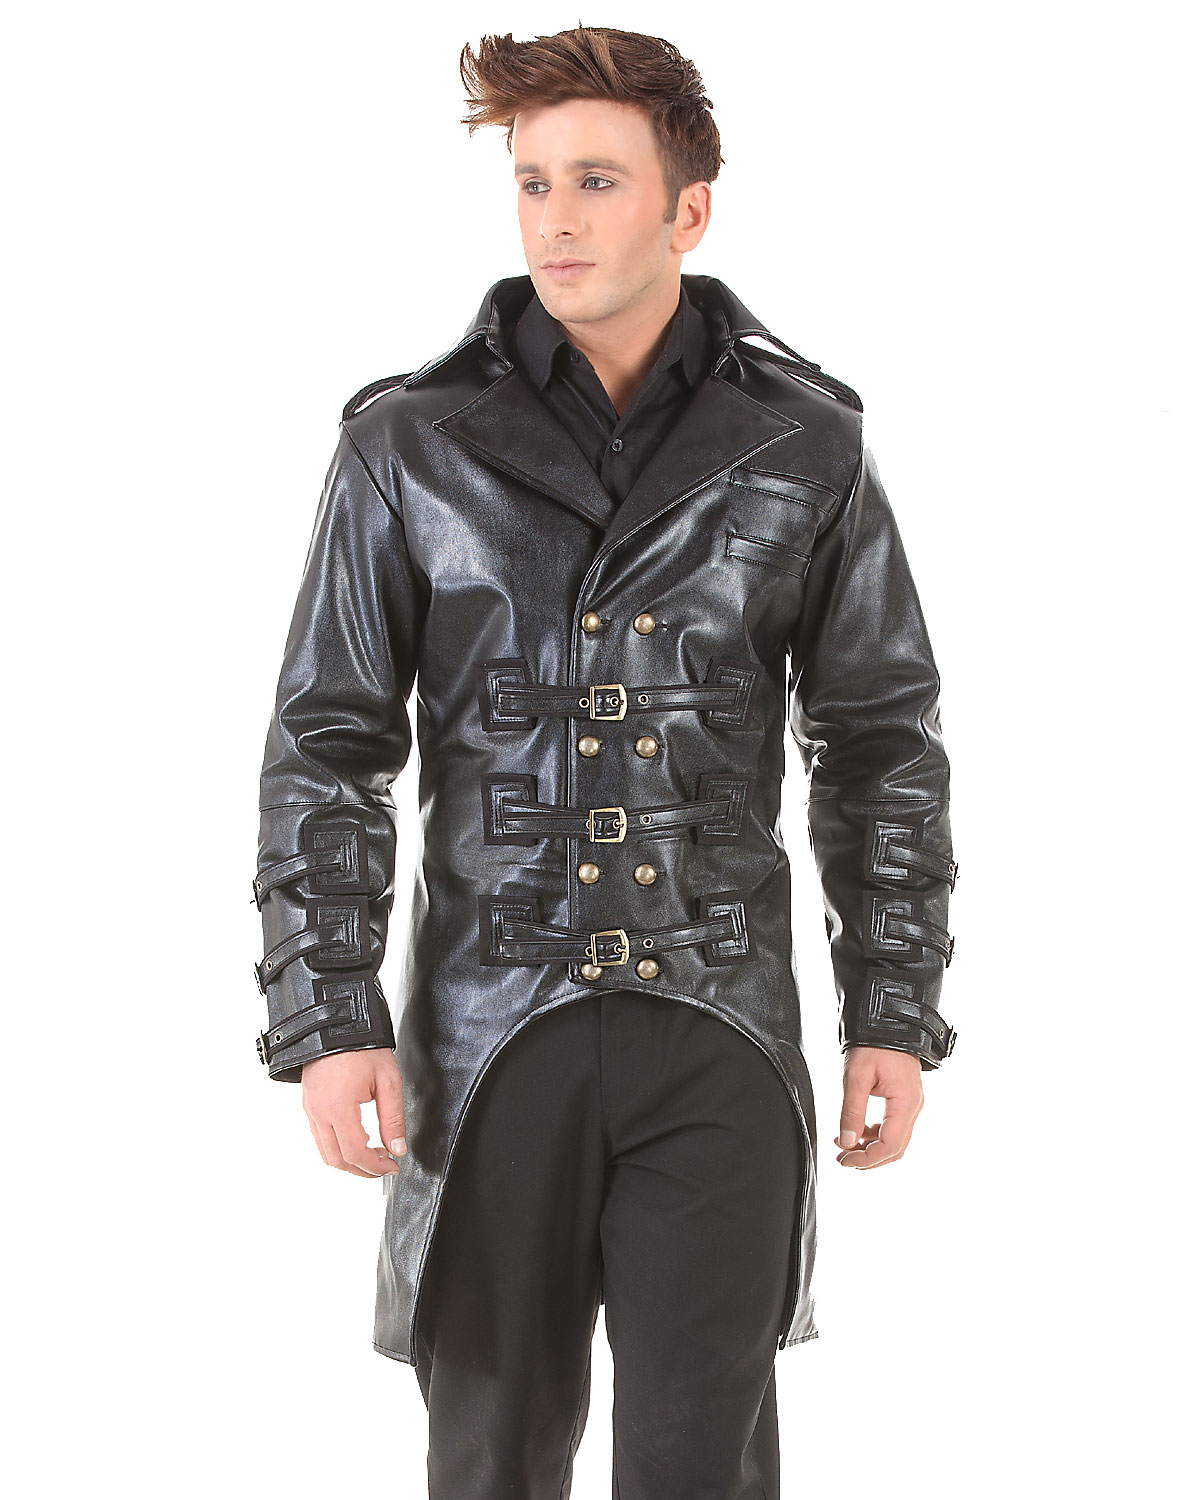 Post Apocalyptic Steampunk Trench Coat Thegothcode Co Uk